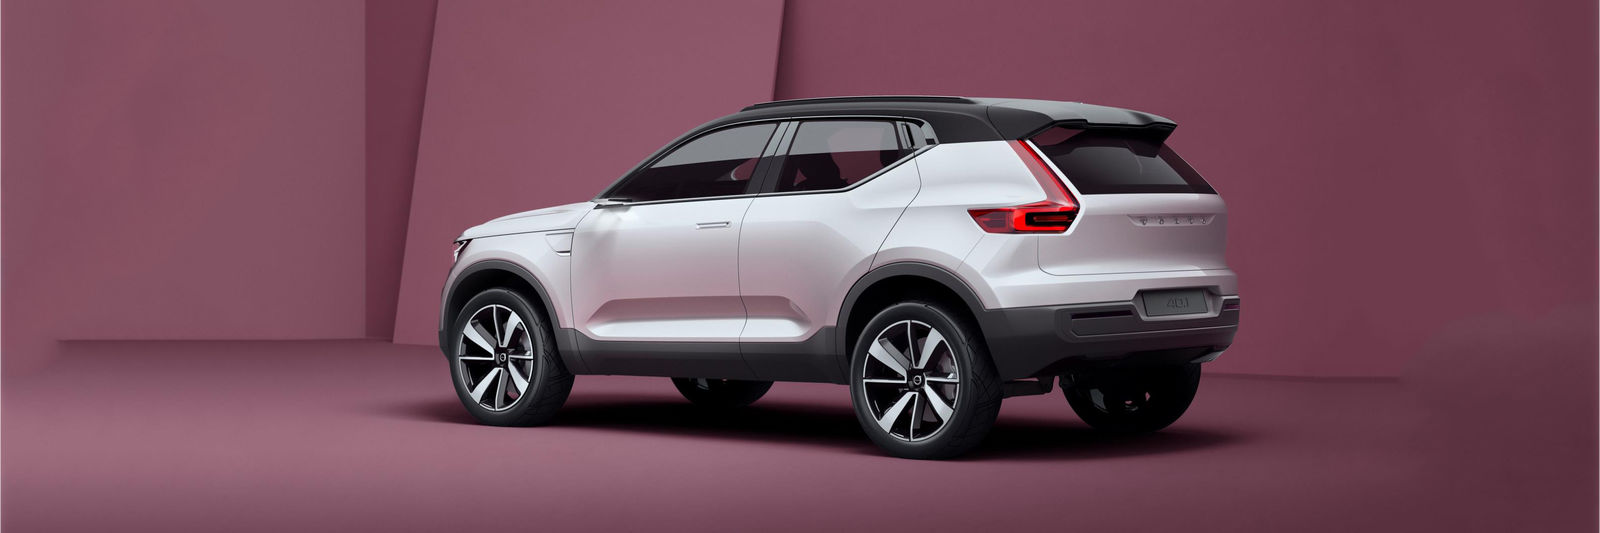 2017 volvo xc40 price specs and release date carwow. Black Bedroom Furniture Sets. Home Design Ideas